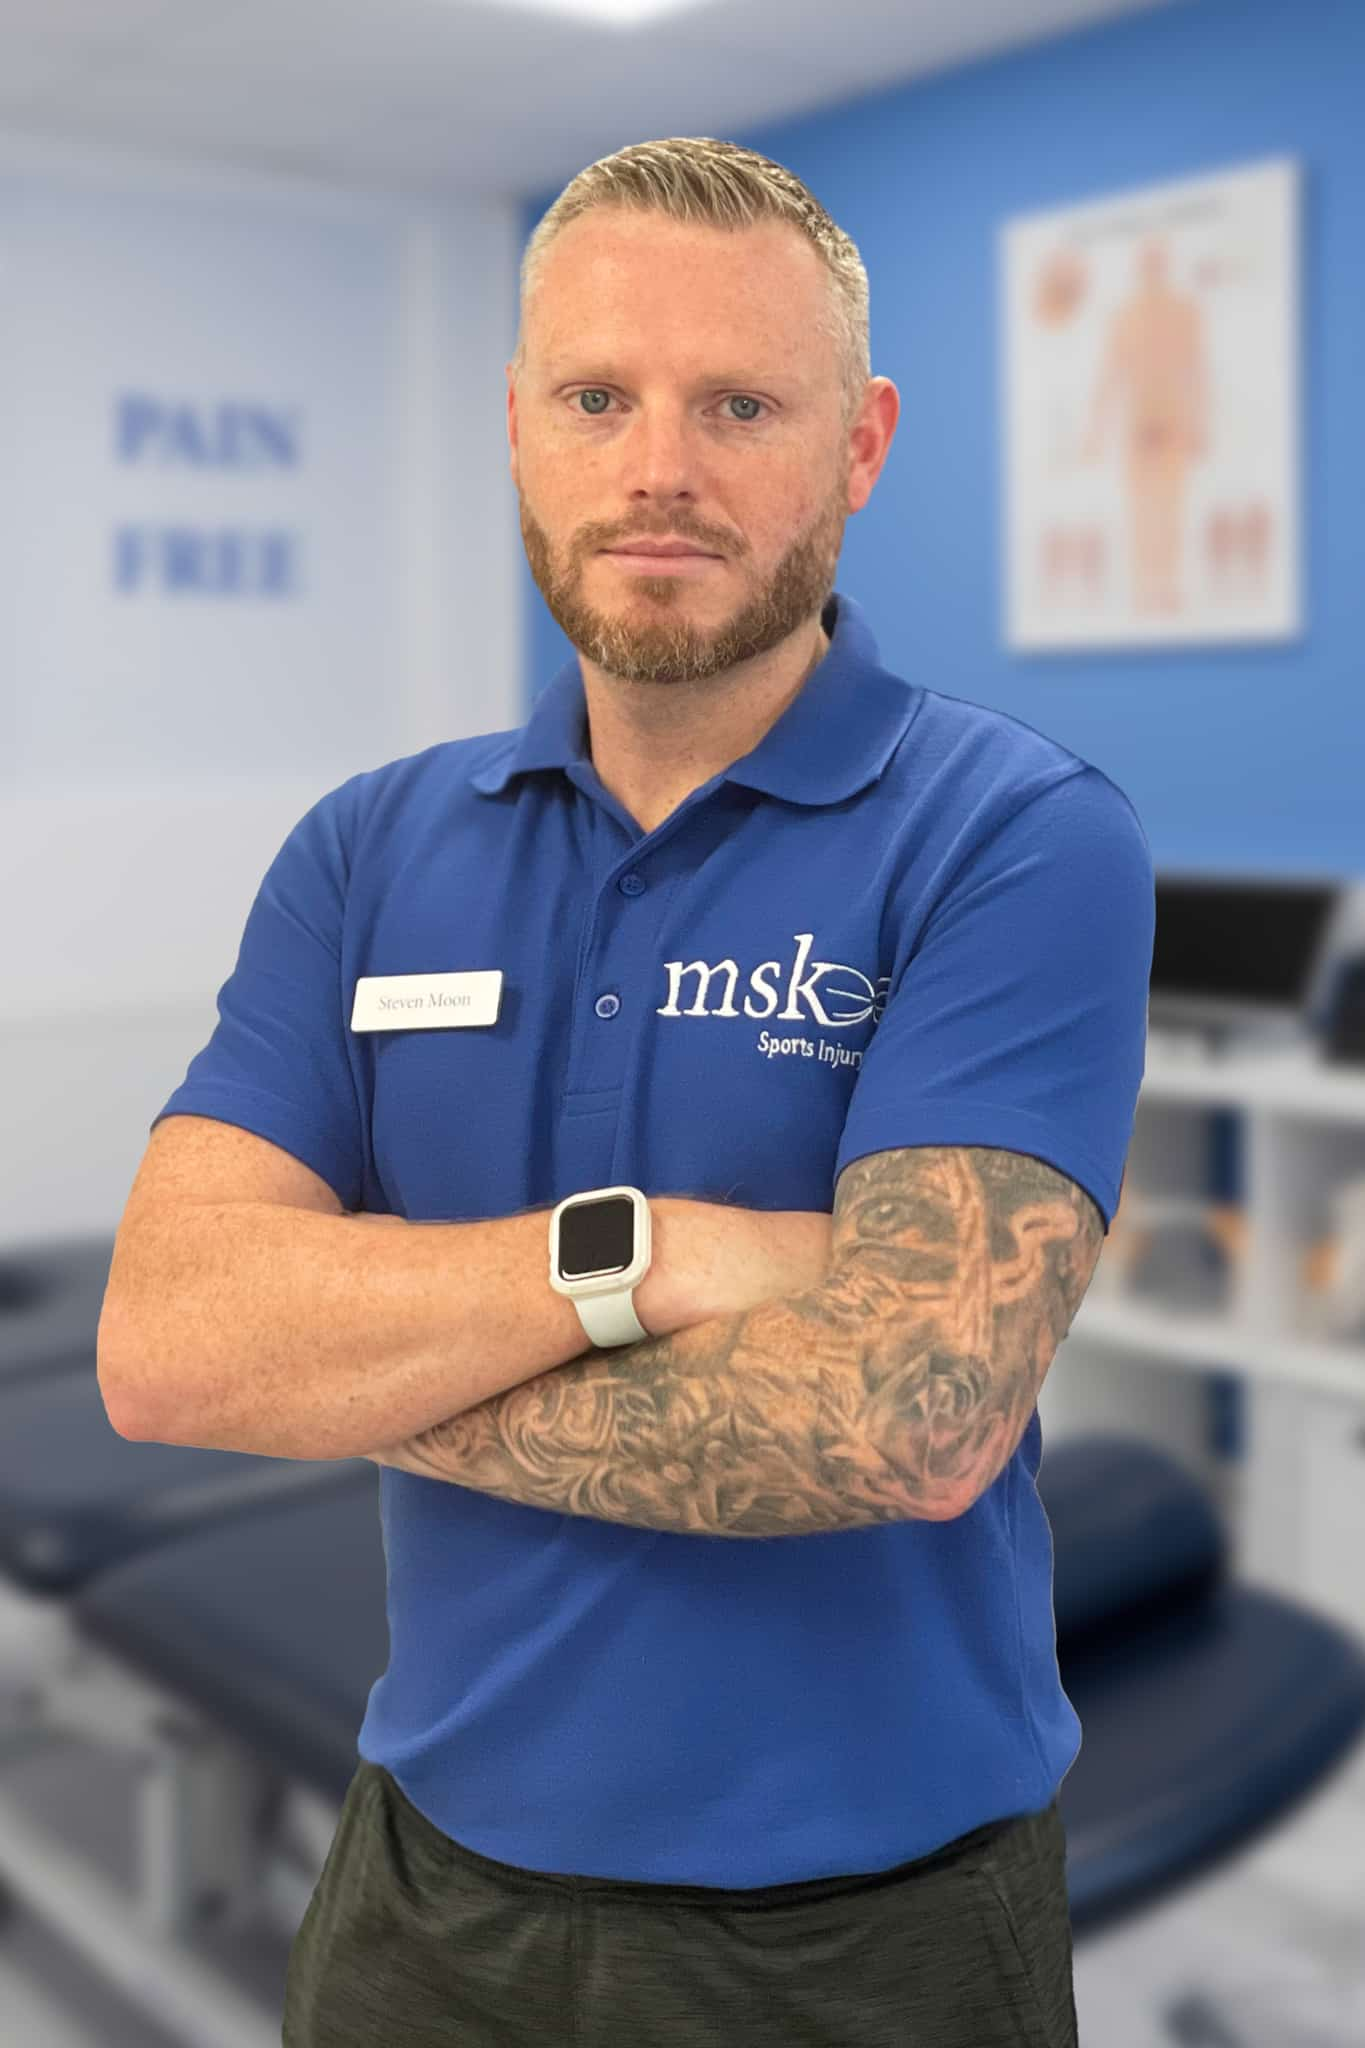 Steven Moon MSK Sports Injury Clinic